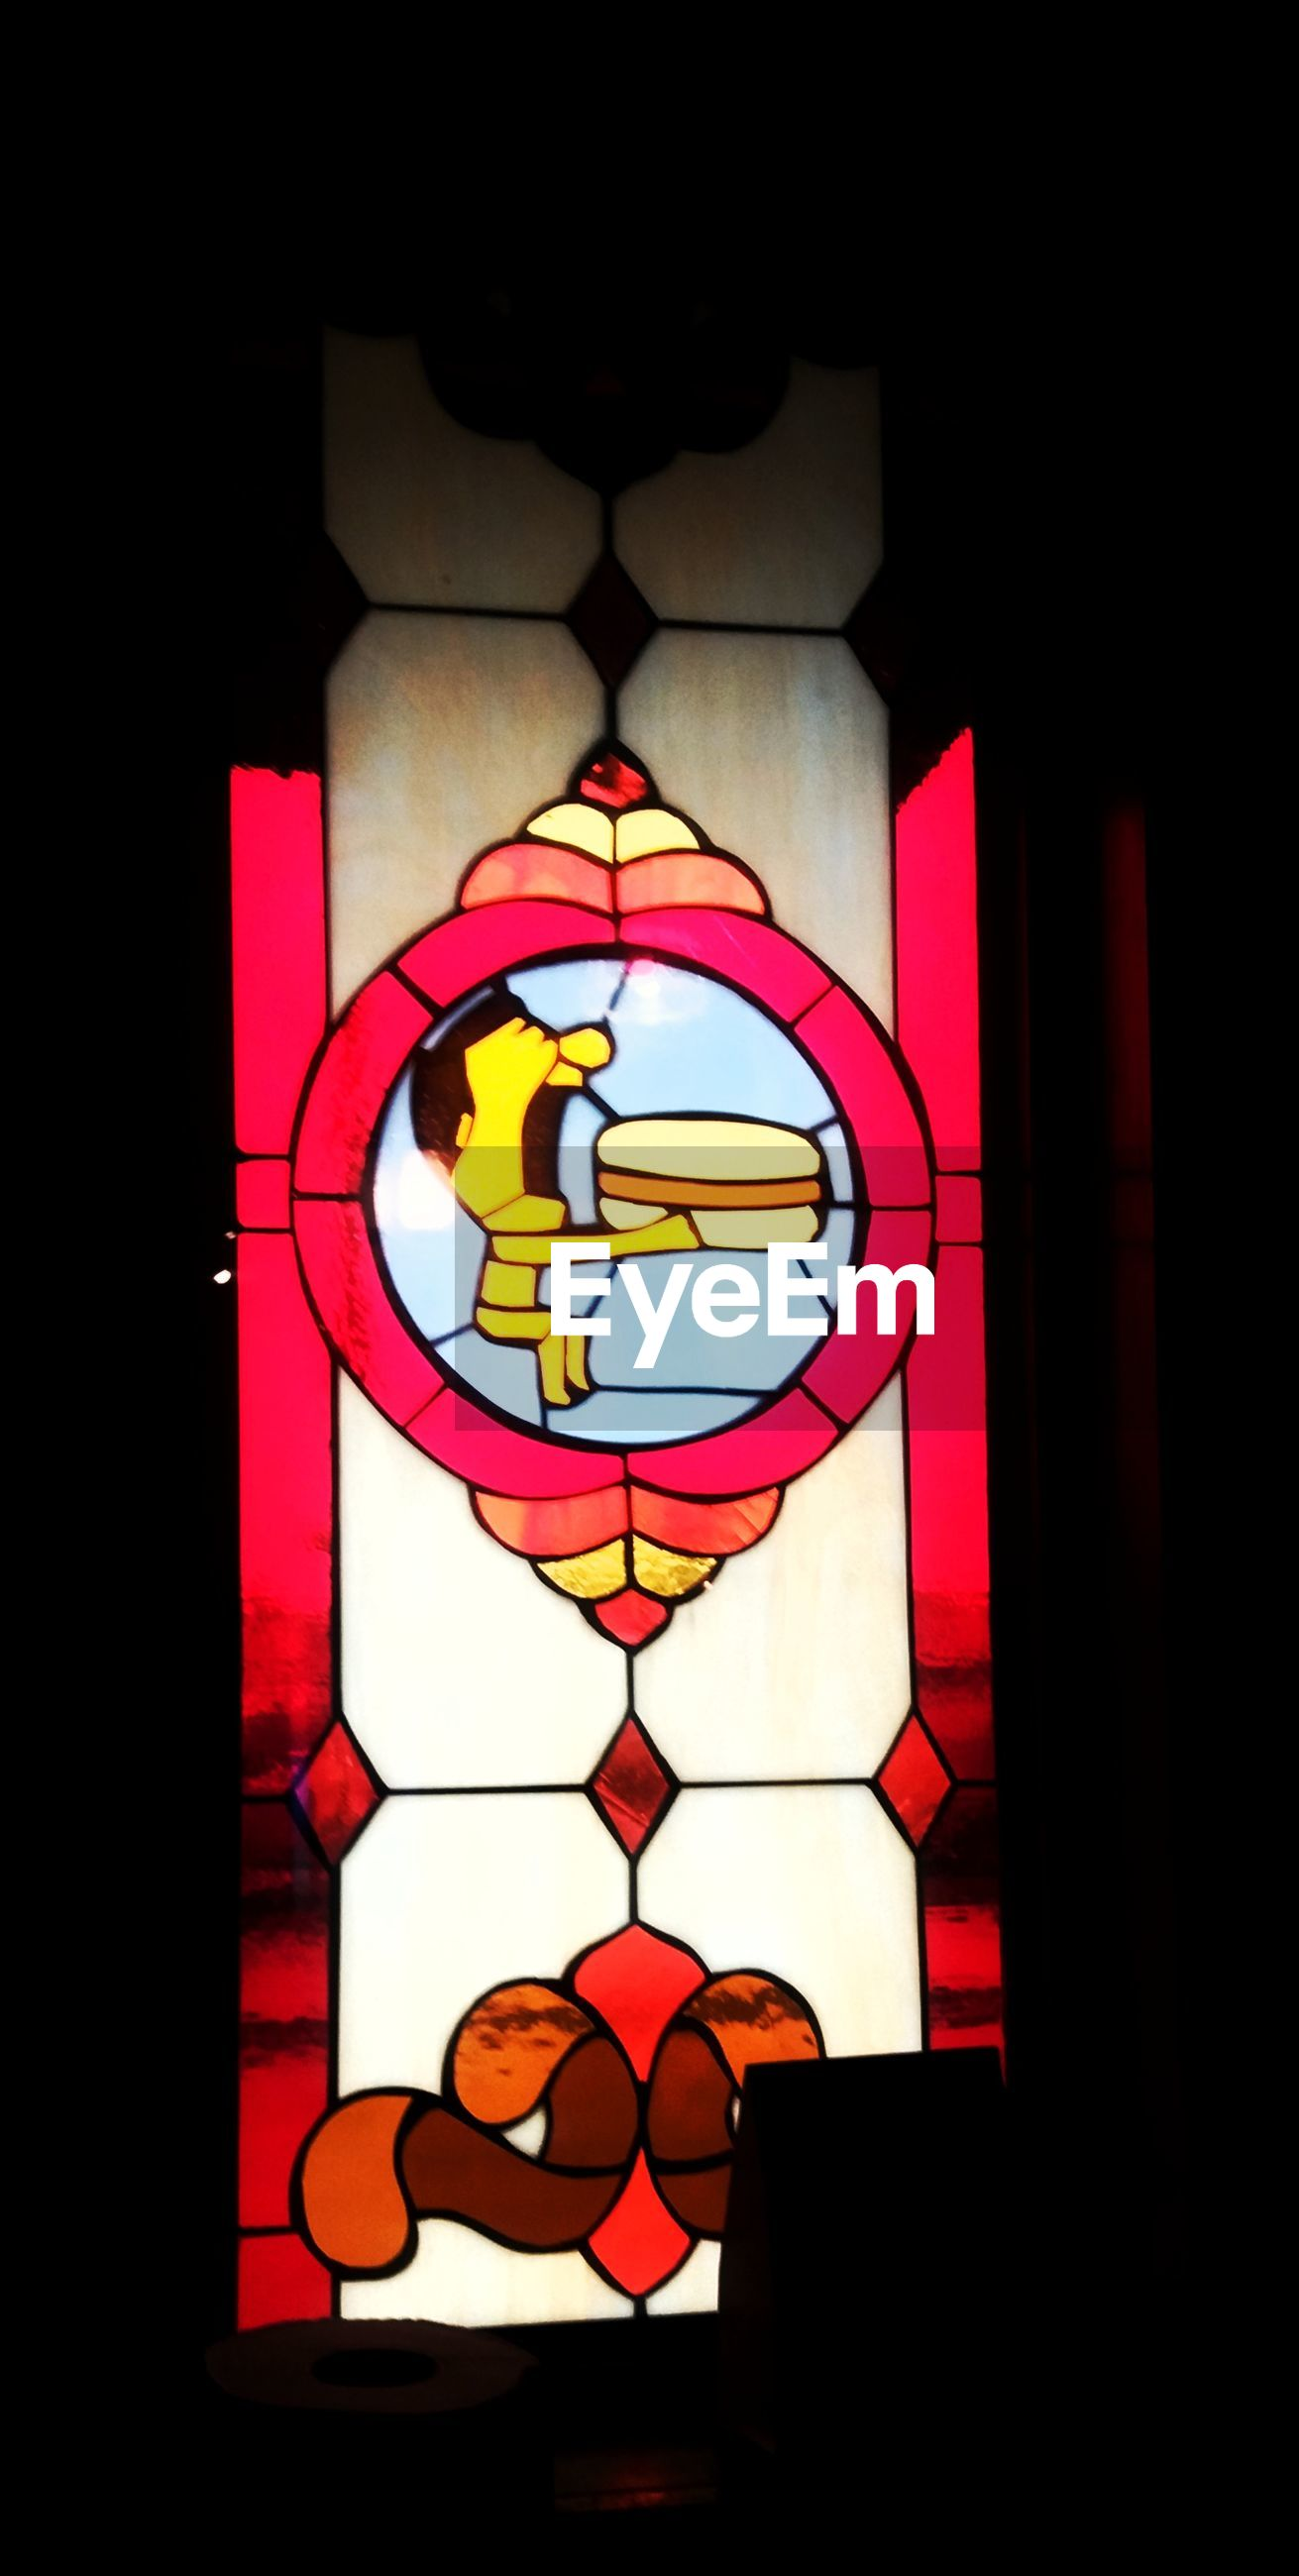 indoors, window, no people, multi colored, built structure, pattern, close-up, architecture, illuminated, day